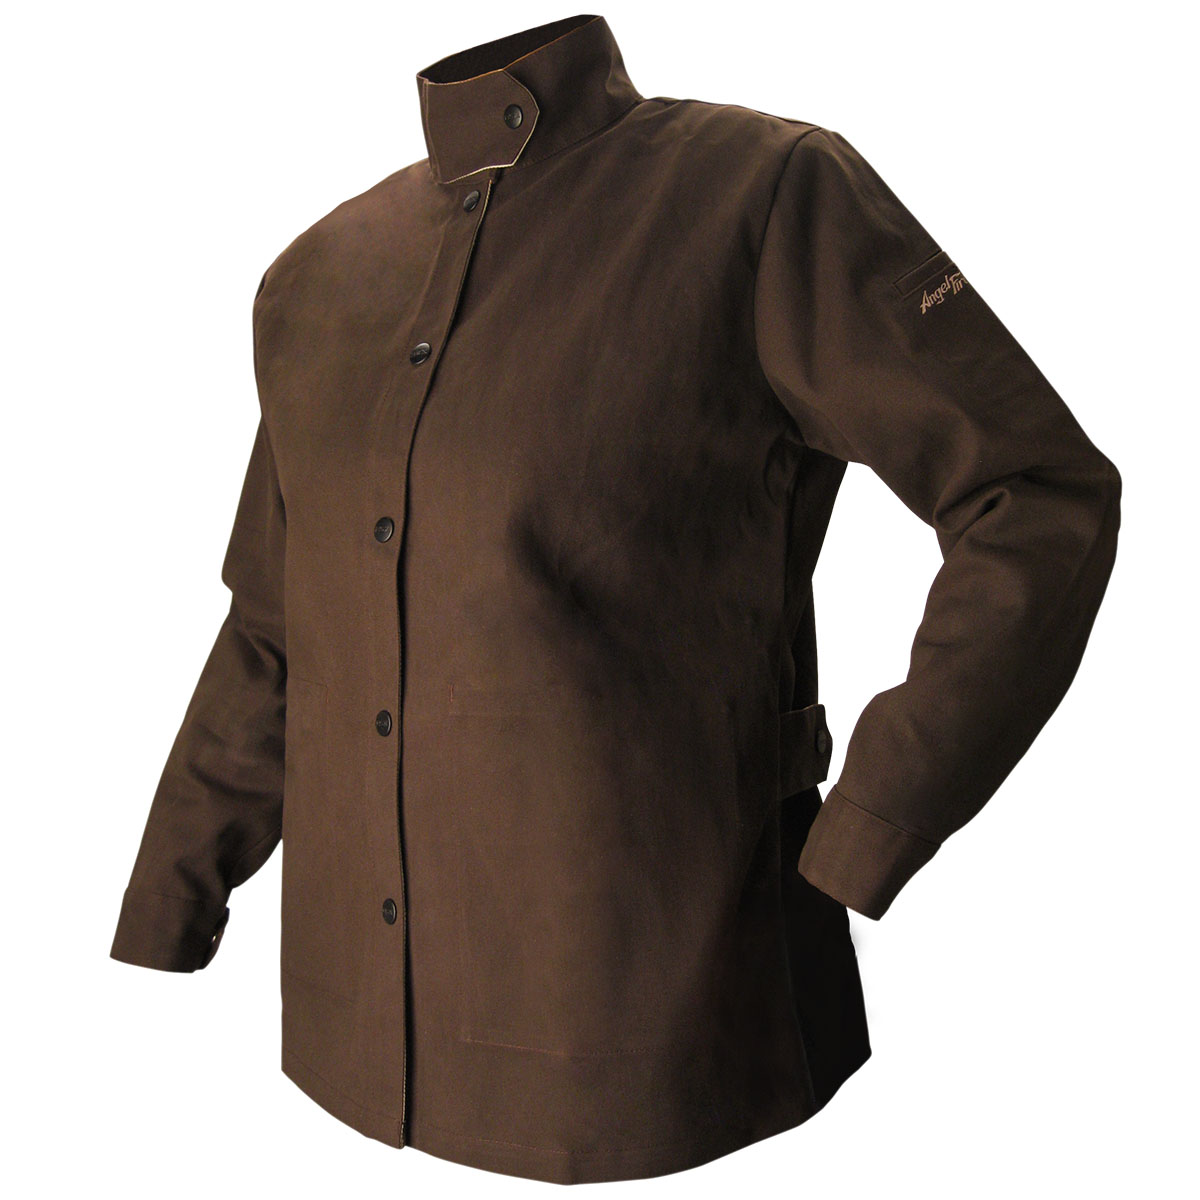 AngelFire Women's FR Cotton Welding Jacket